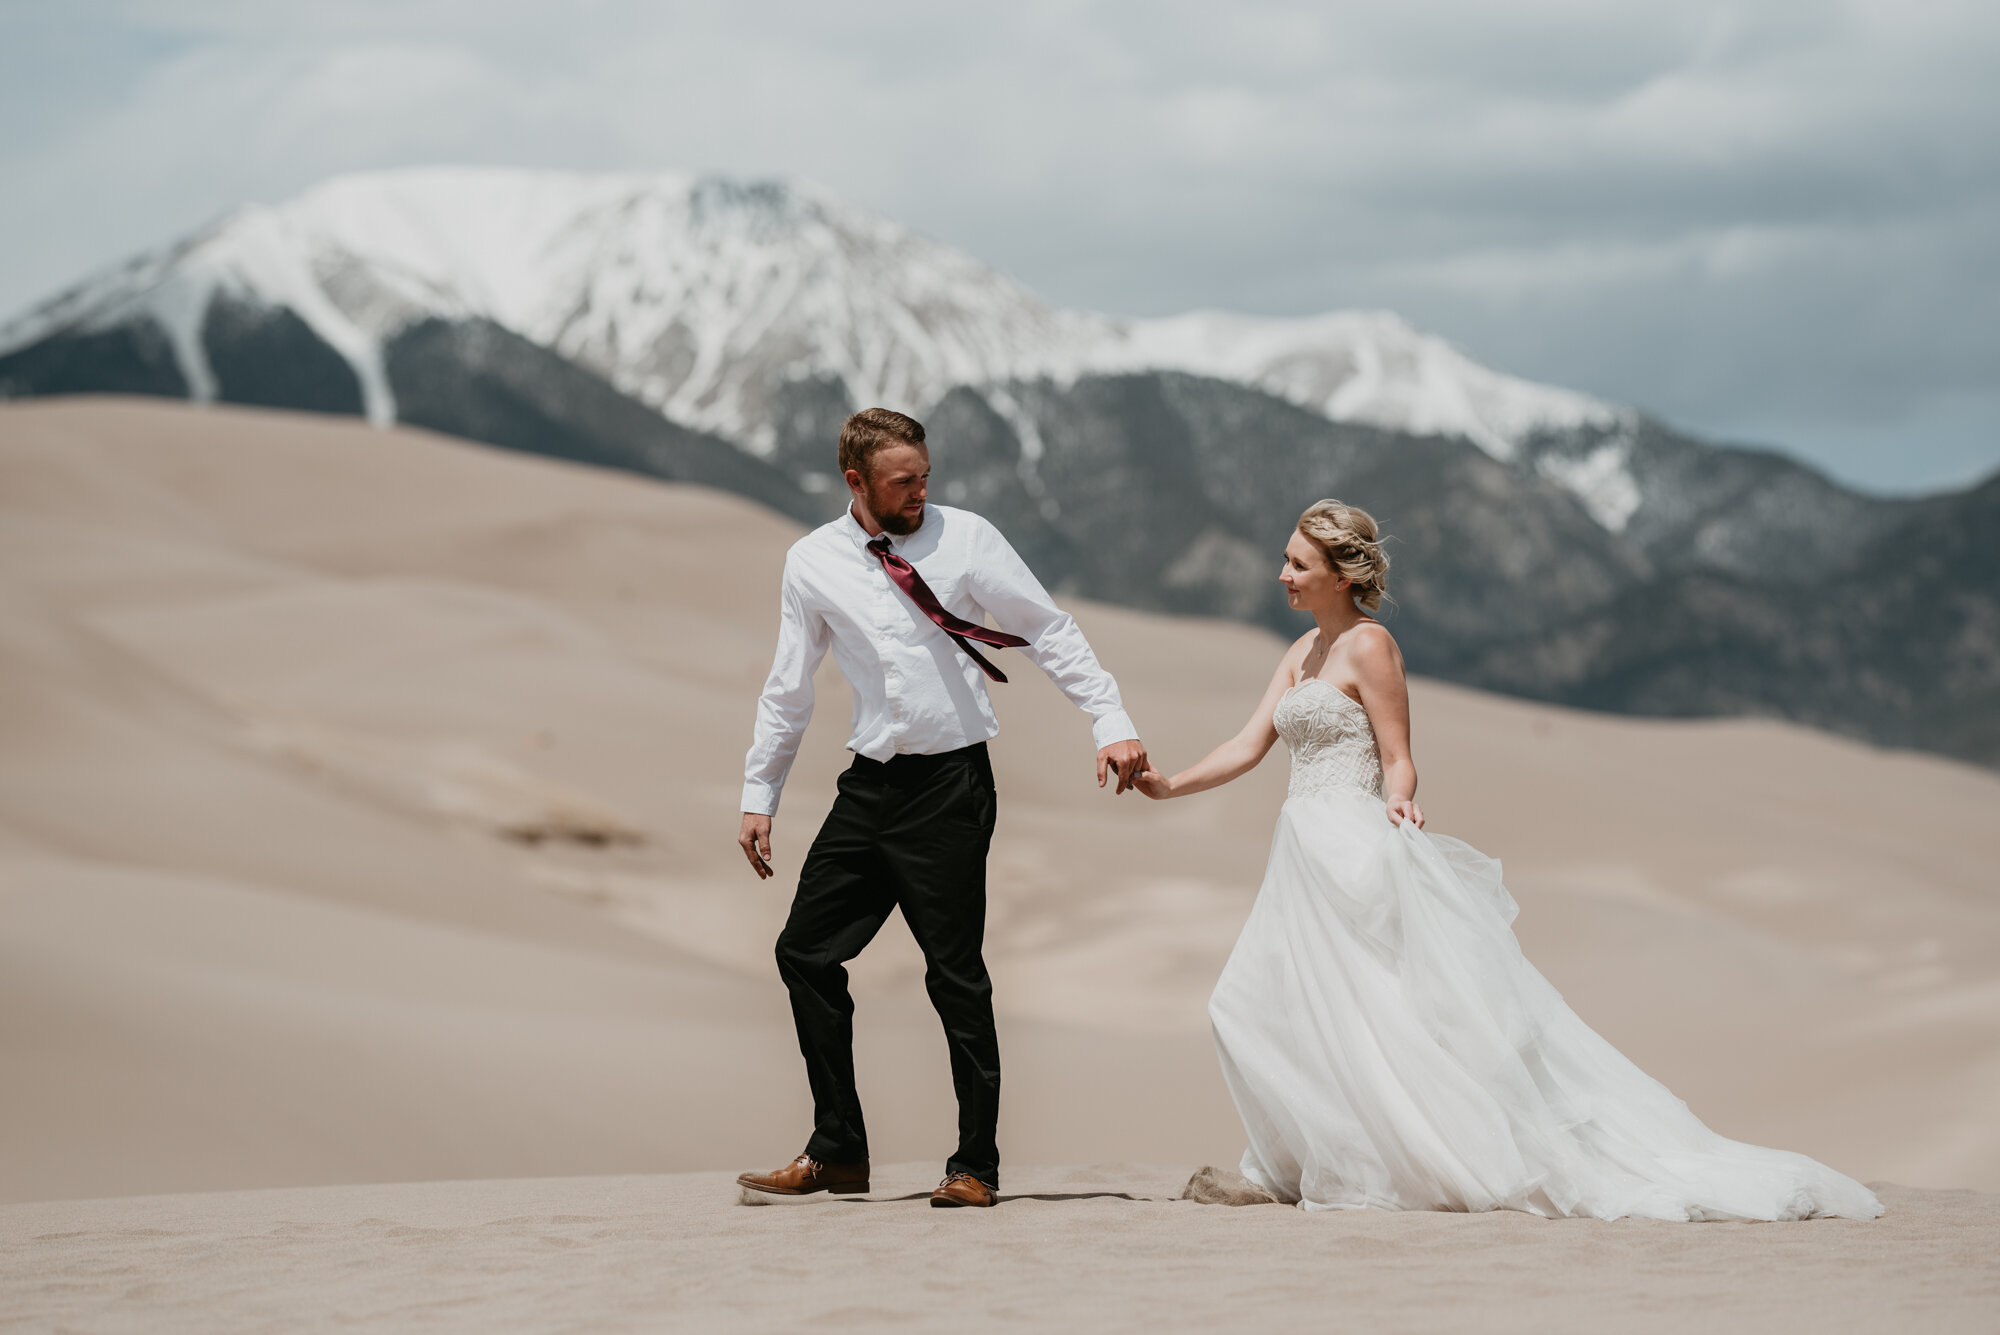 Eloping couple Kaitlyn and Doug walk hand in hand on sweeping sand dunes with snow capped mountains in the background.